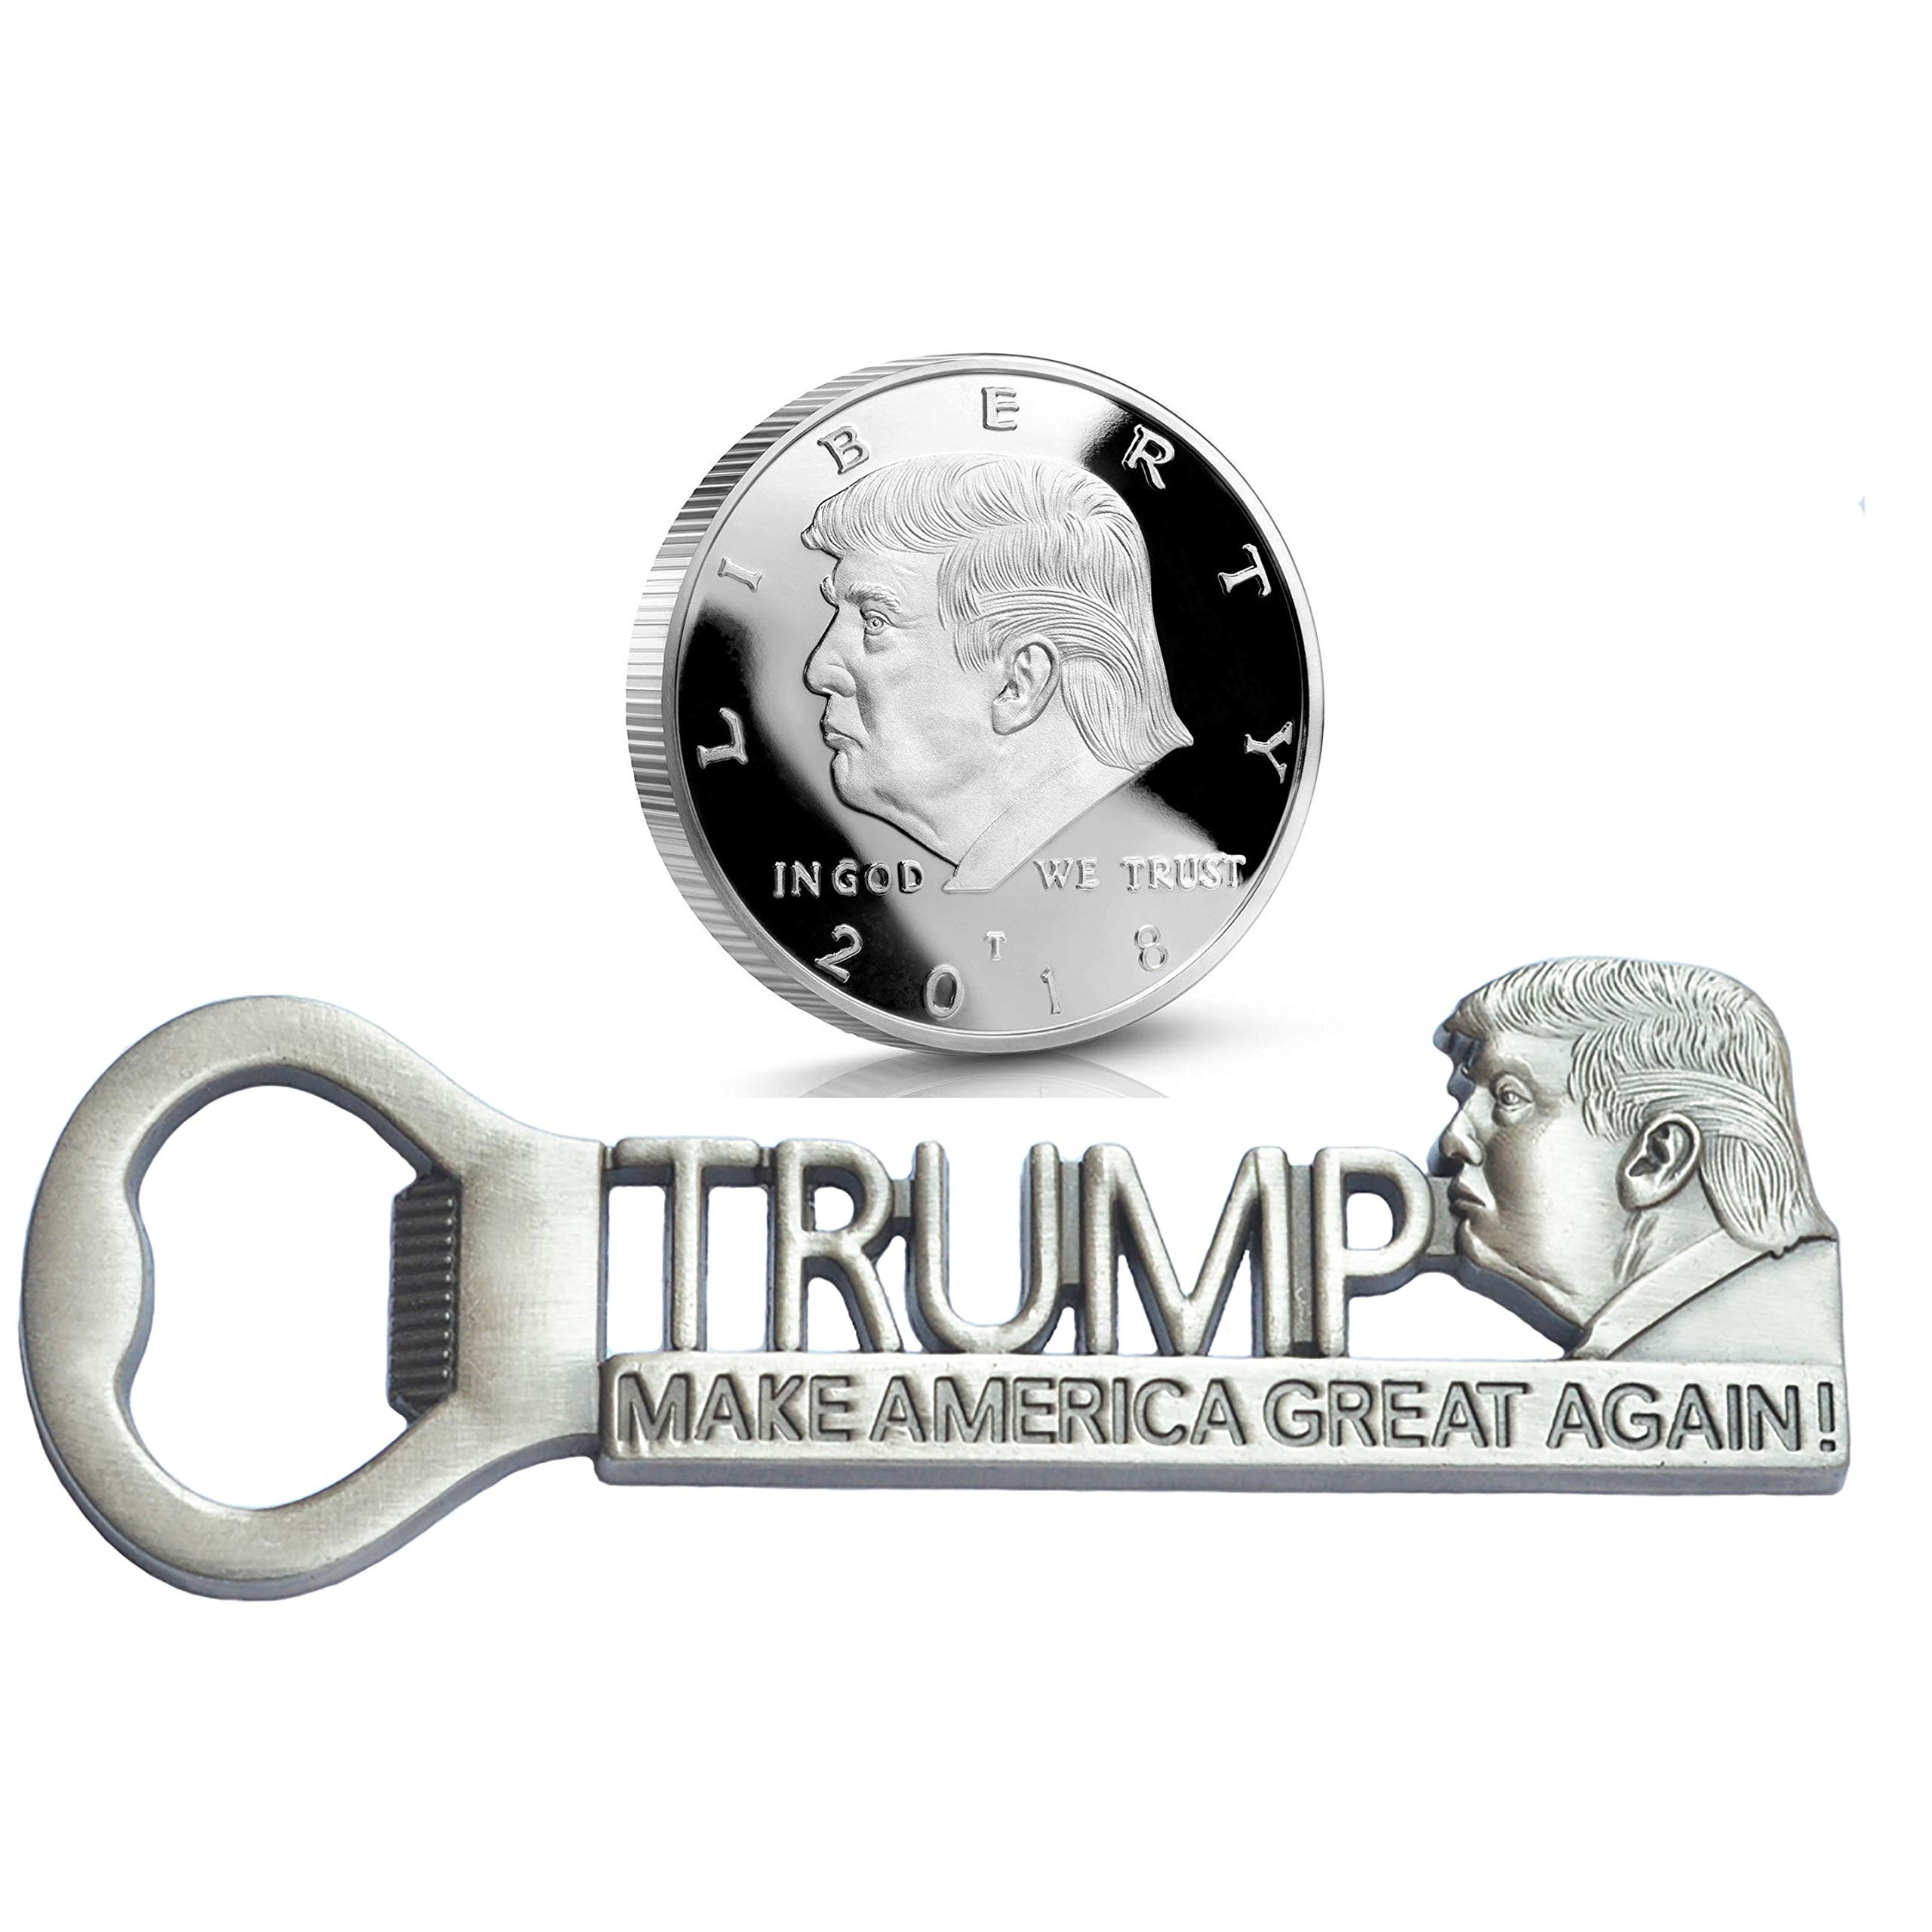 [ Donald Trump Supporter Gifts ] Make America Great Again Bottle Opener and Donald Trump Silver Plated Collectable Challenge Coin 2018 (Antique Silver Bottle Opener + Silver Coin)